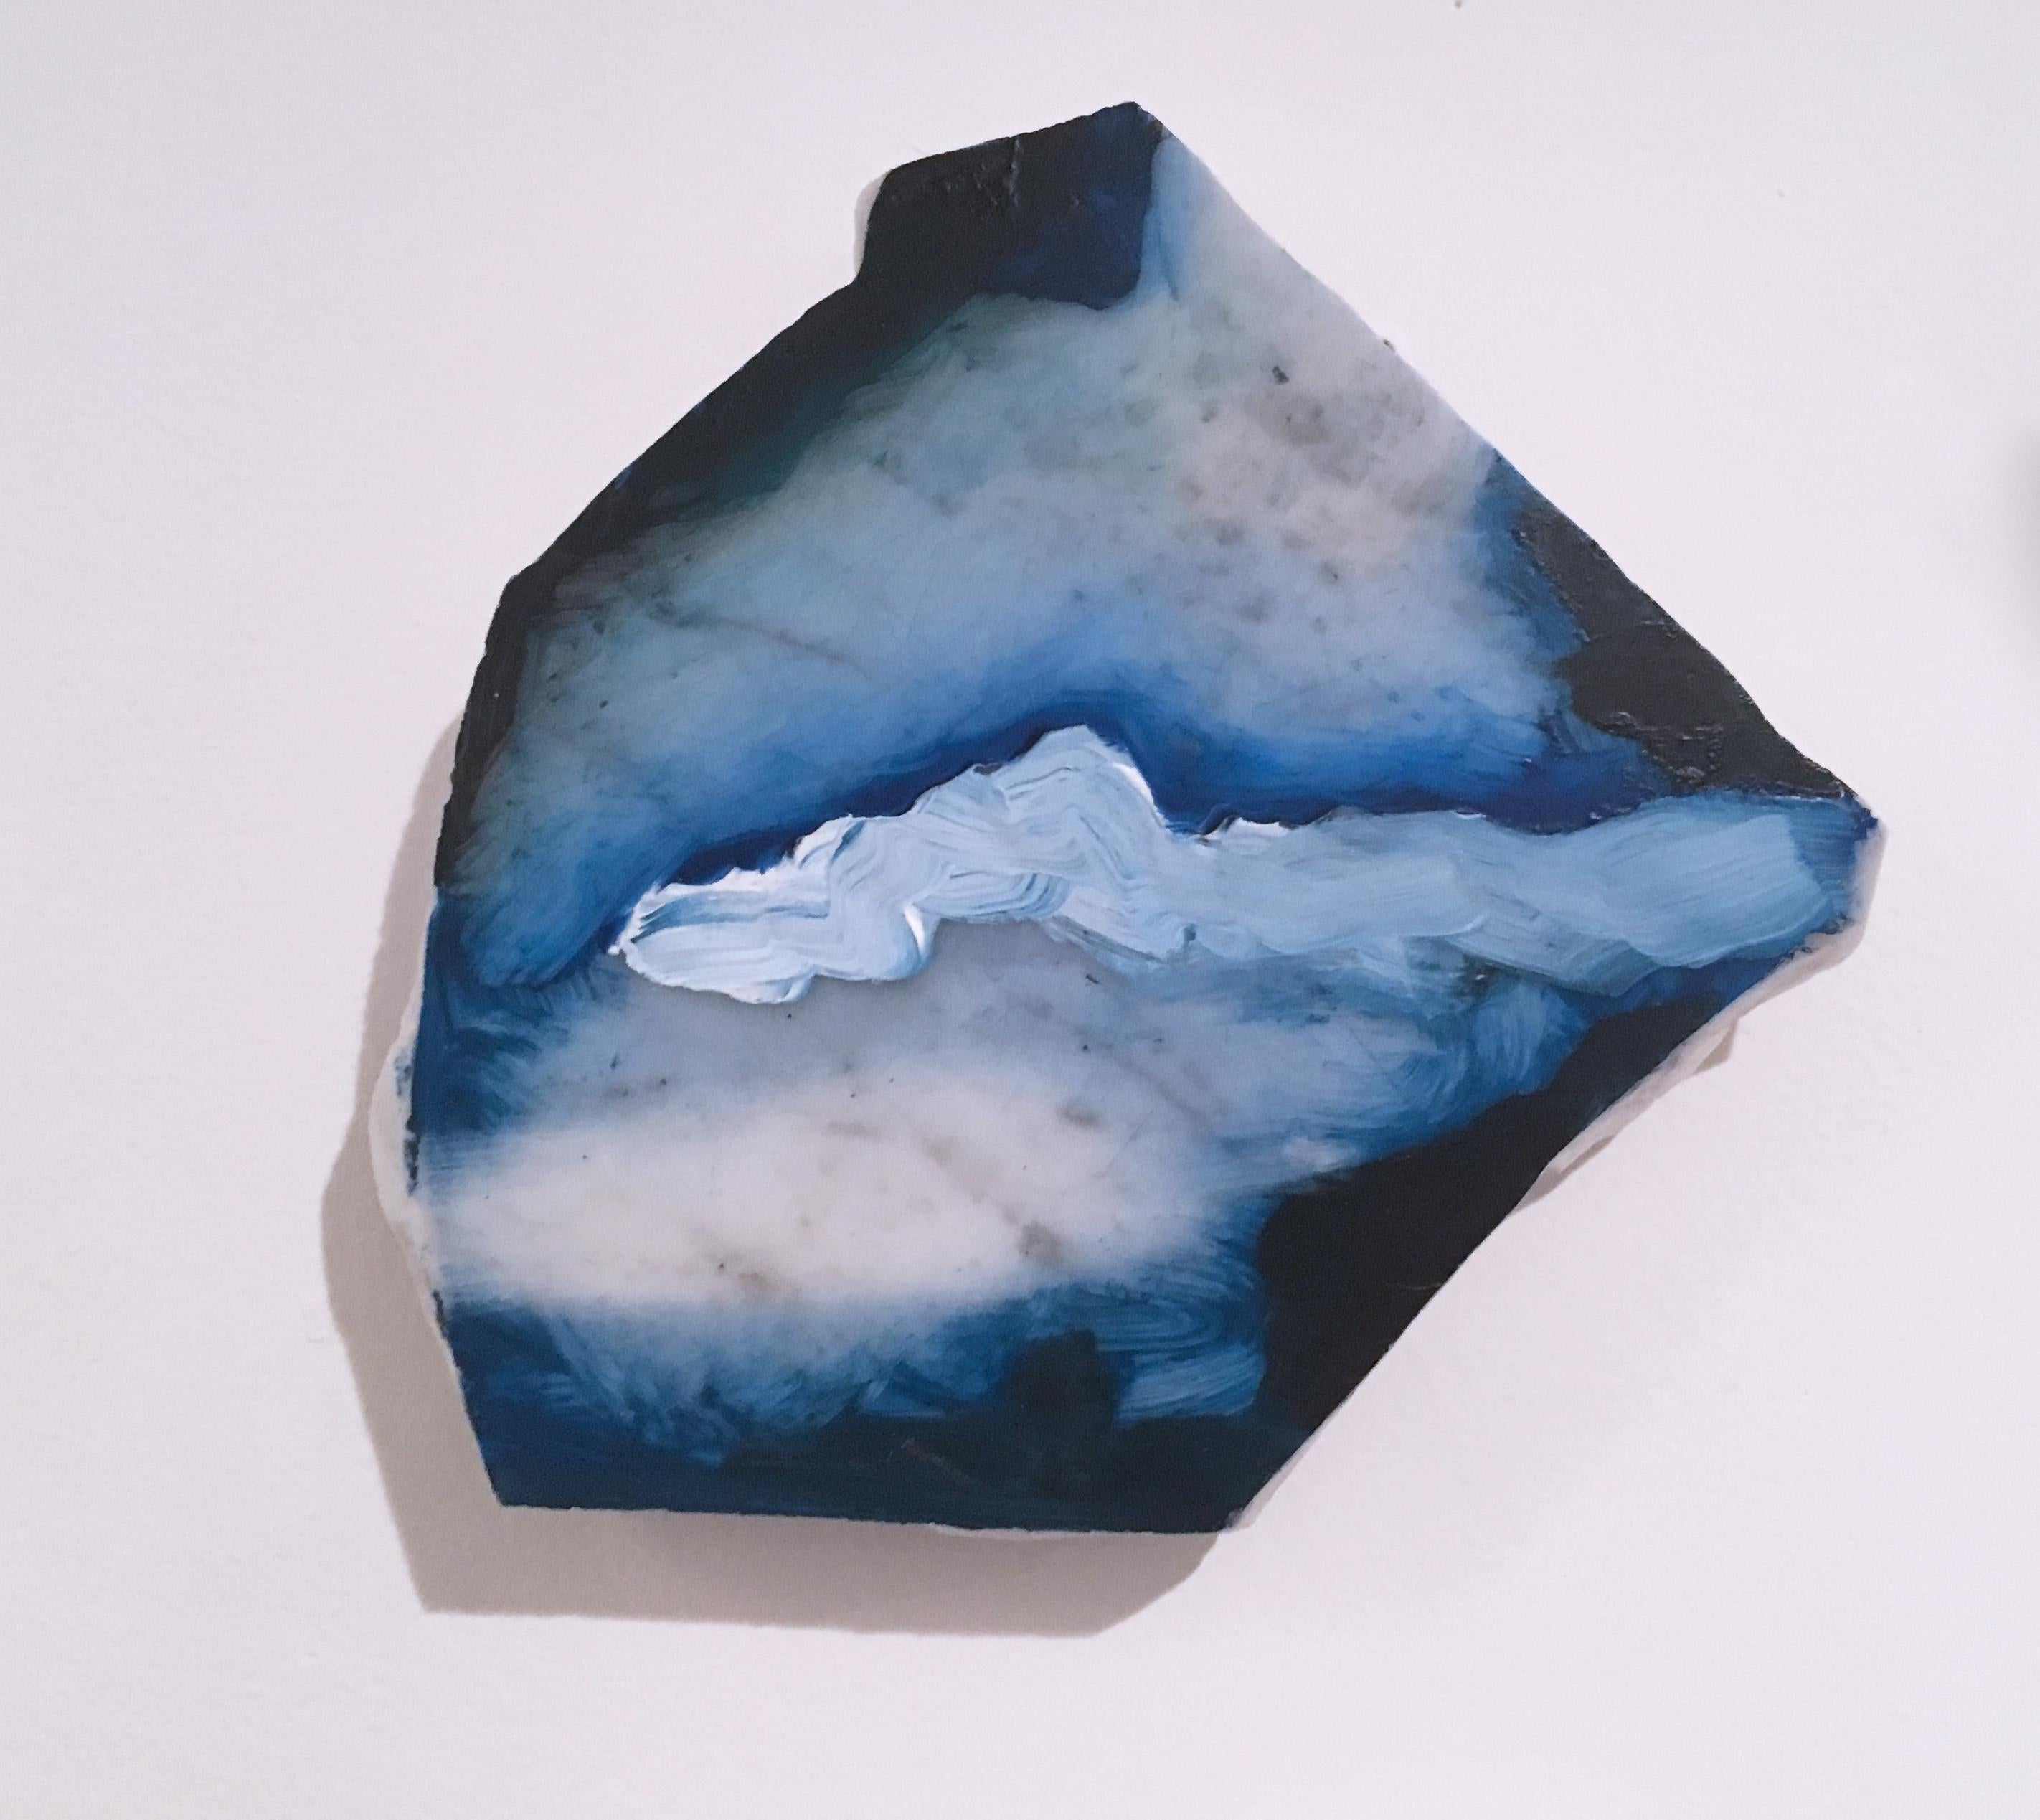 """Untitled """"Marble Fragment 3"""" 2019, acrylic, landscape, wall sculpture, clouds"""